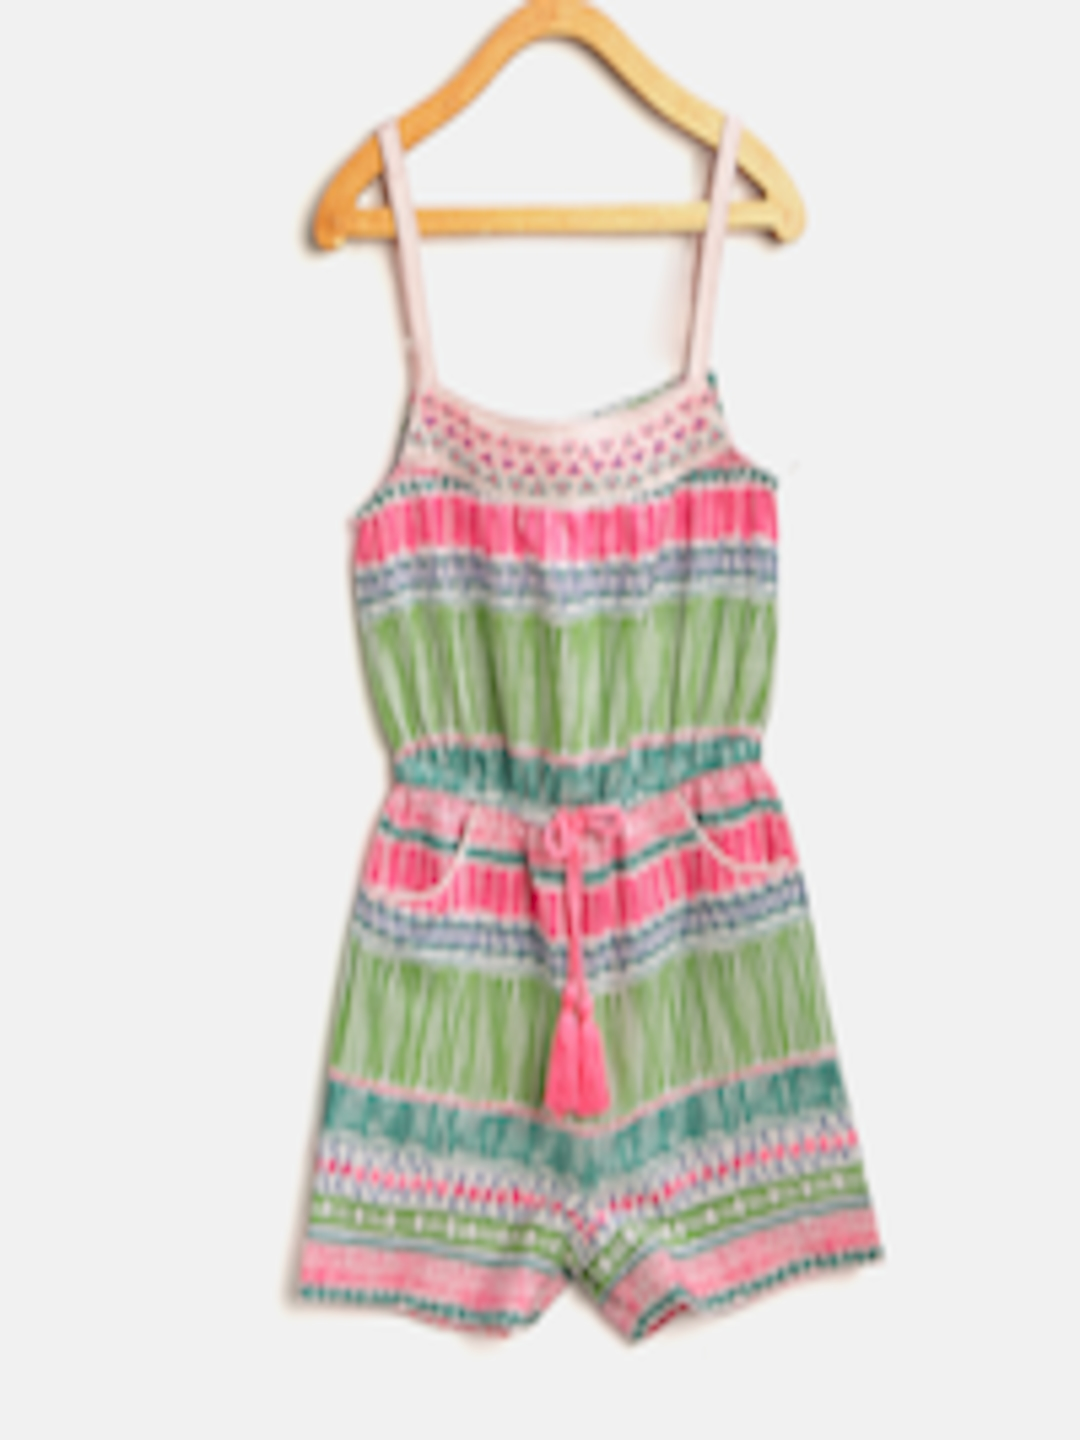 e20f57d4569 Buy Nauti Nati Girls Pink   Green Printed Playsuit - Jumpsuit for Girls  8554821